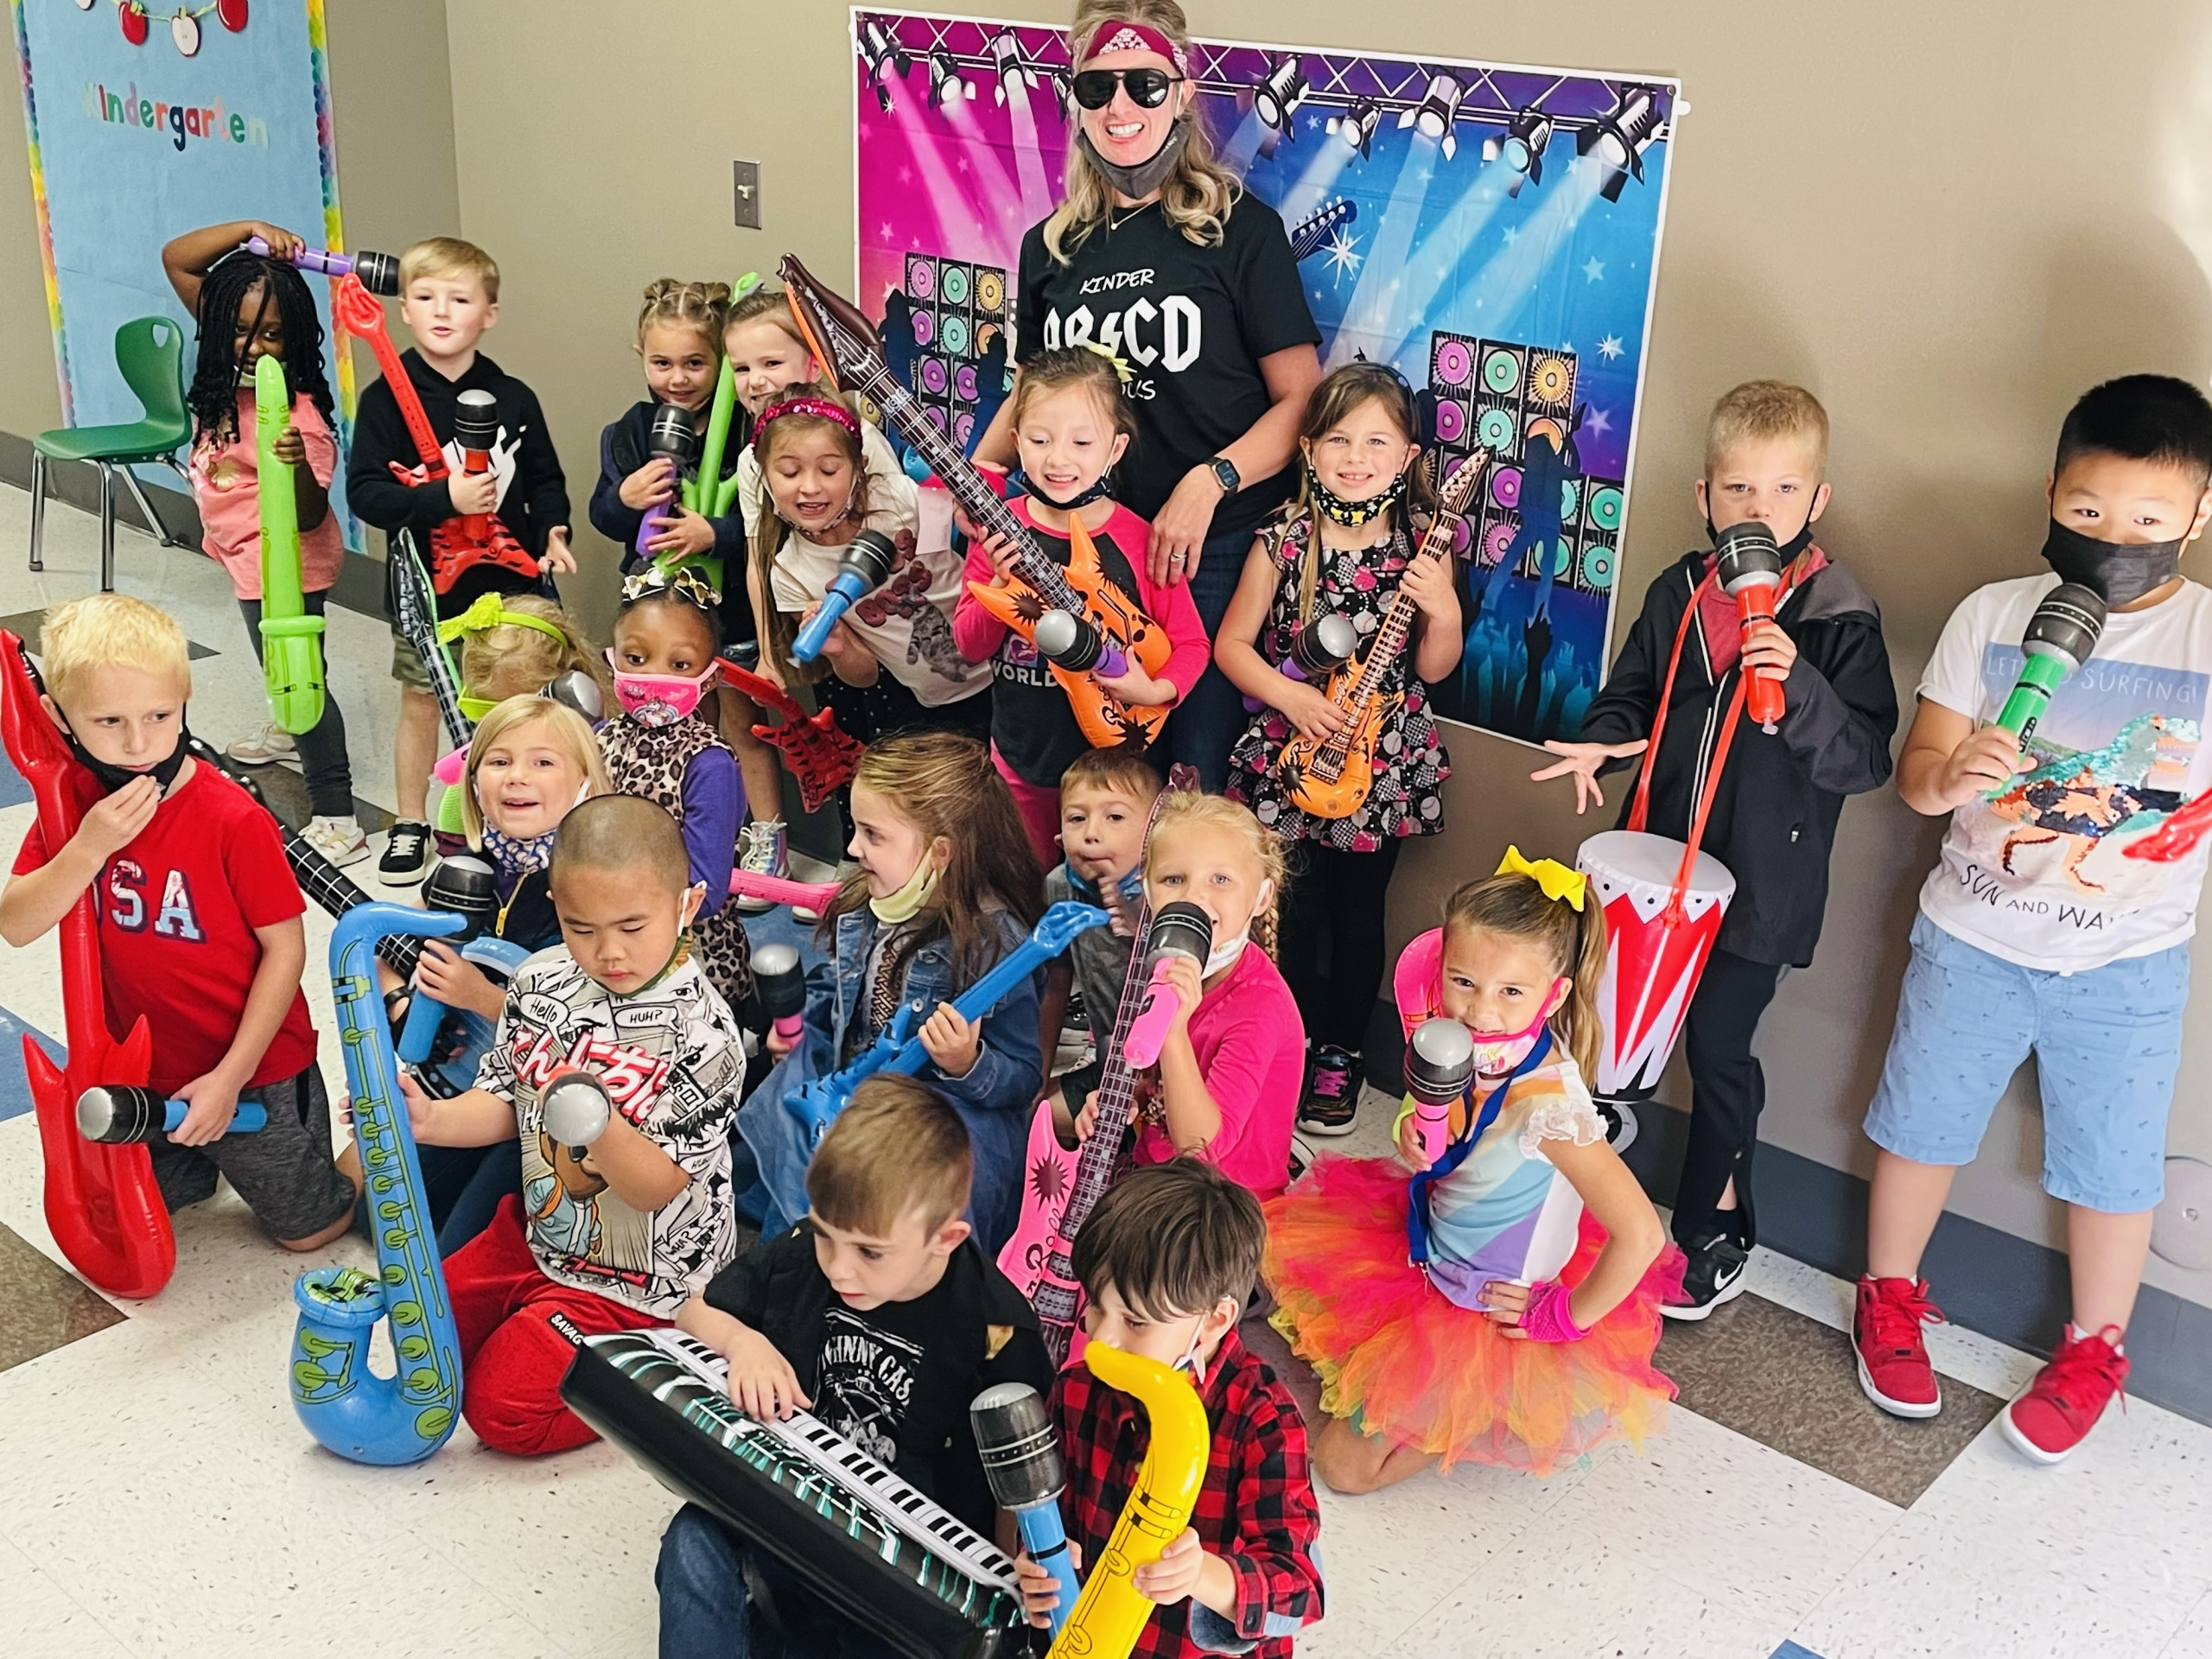 Kolling students complete 844 acts of kindness and raise over $23,000 throughout their community. Classes celebrate by Rocking out!